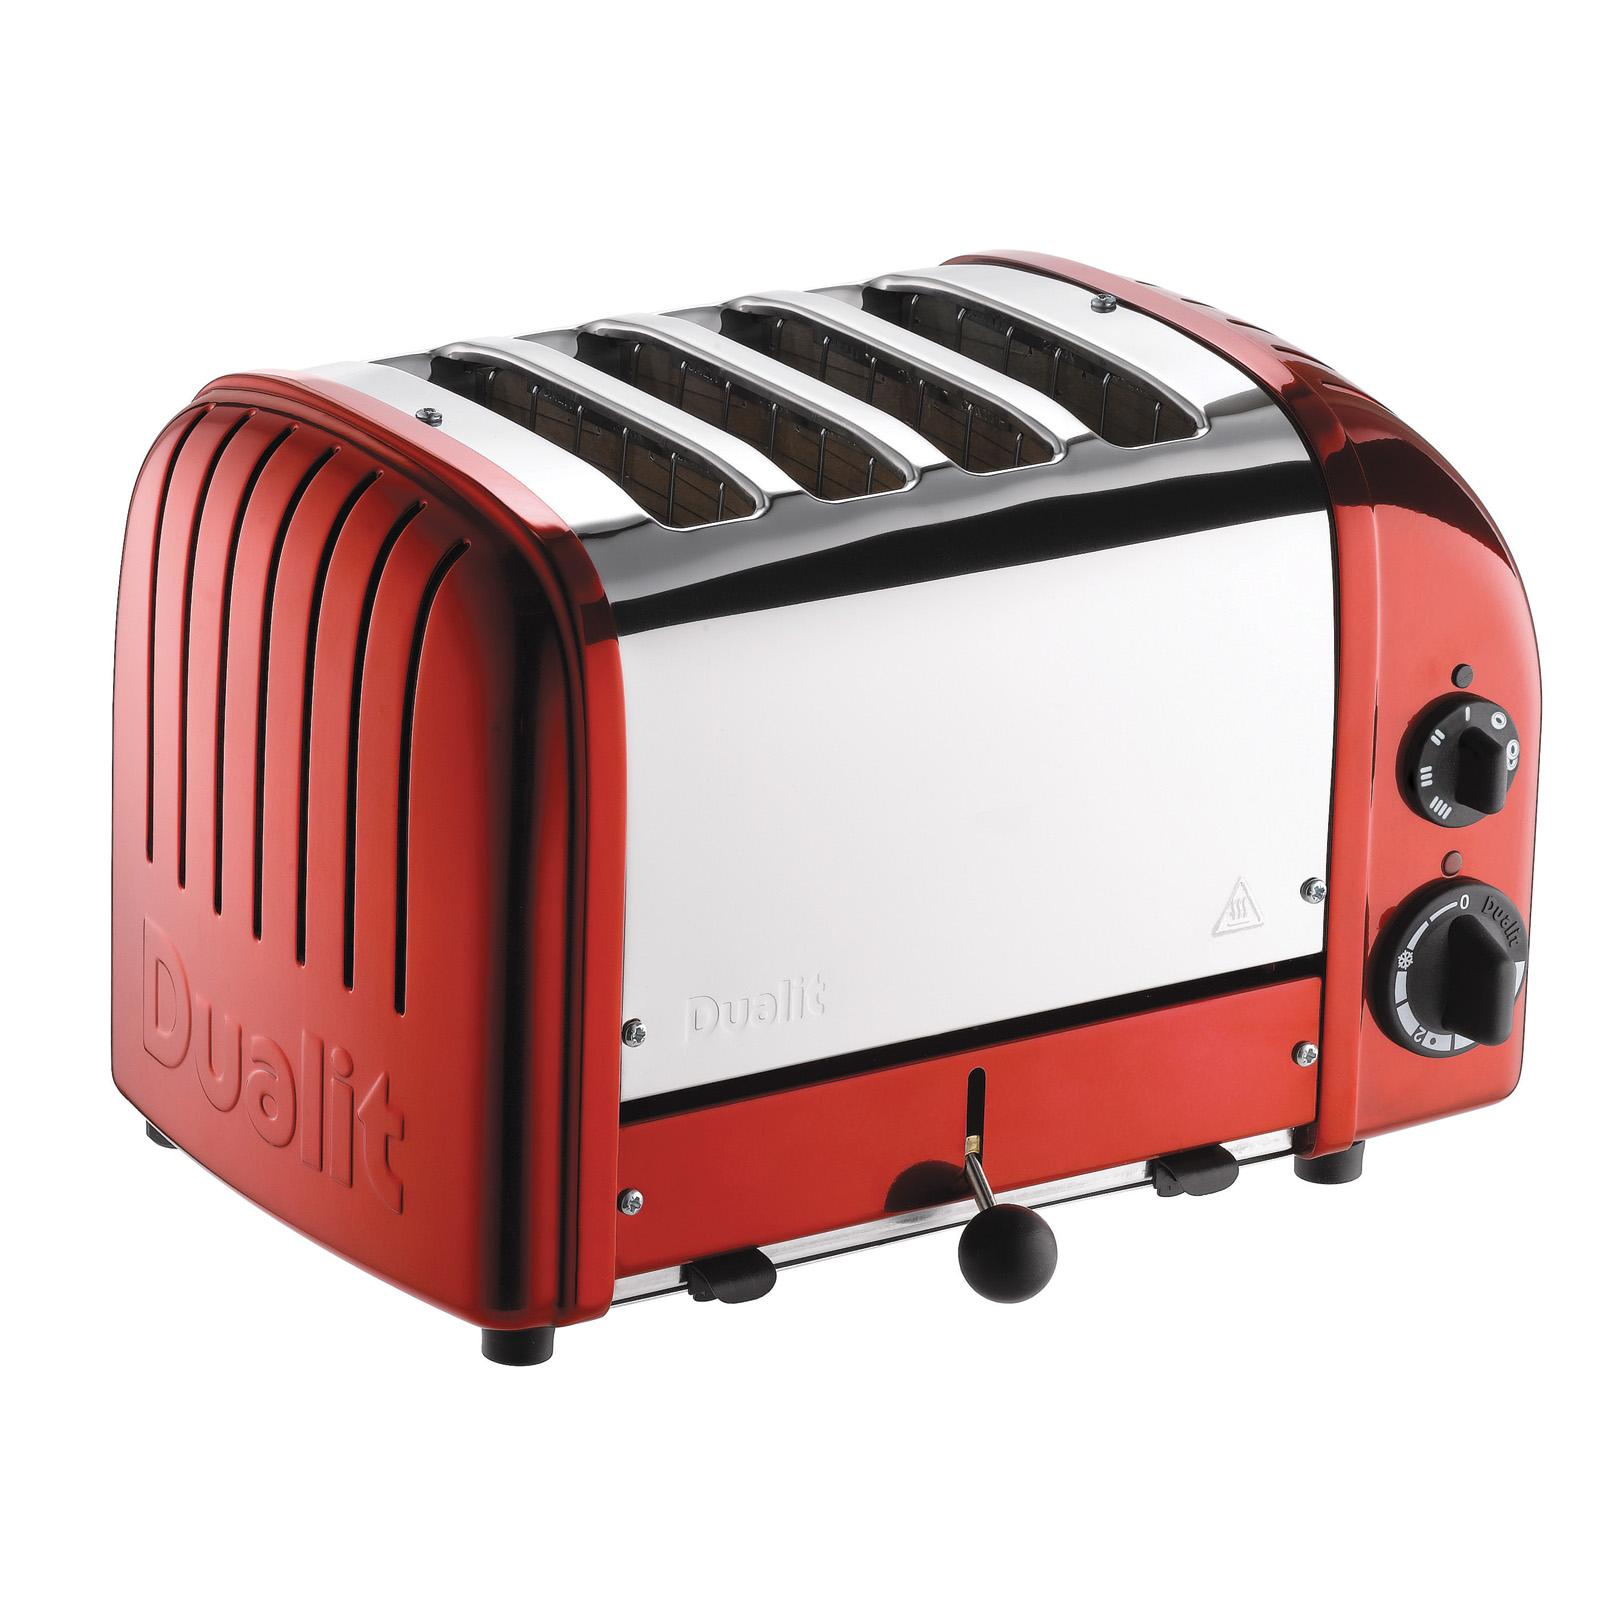 Dualit 47171 4 Slice Vario Classic Toaster-Red - 47171